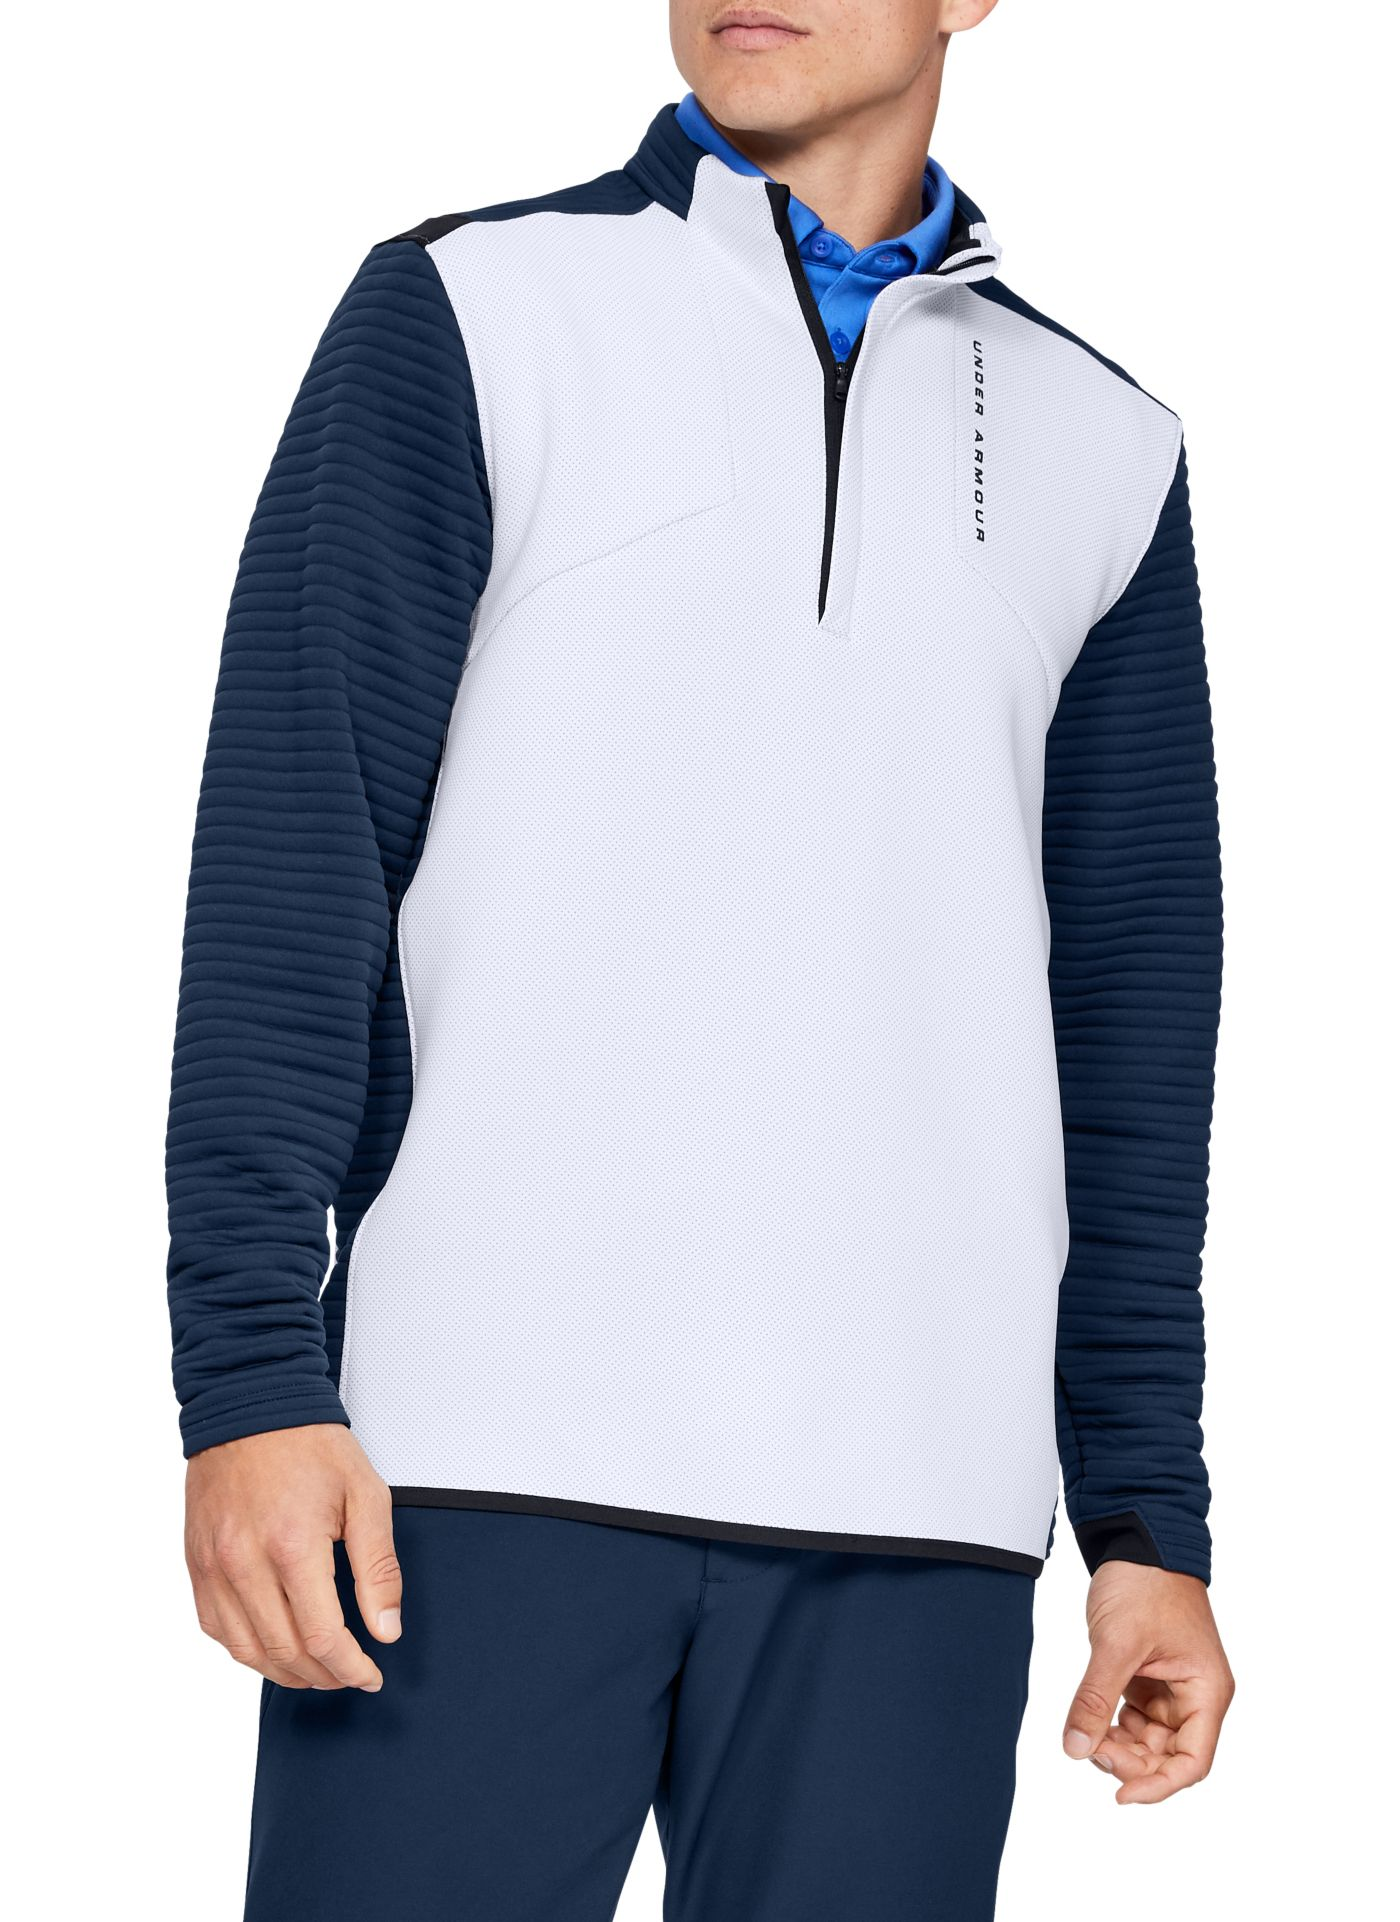 Under Armour Men's Storm Versa Daytona Golf ½ Zip- Big & Tall